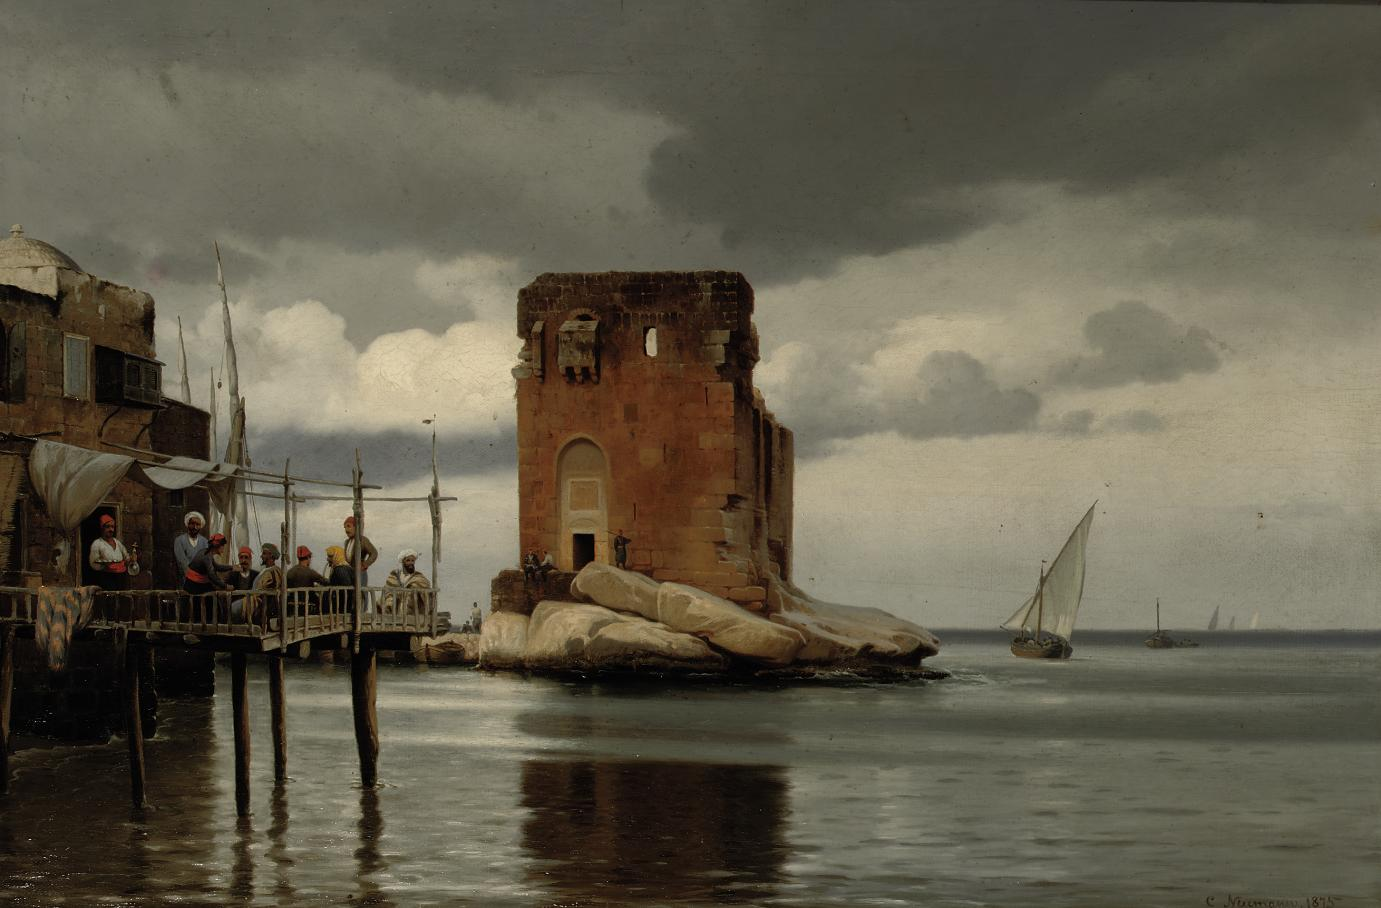 Ved tolboden i Beyroeth: scene of a harbour with a toll port, Beirut